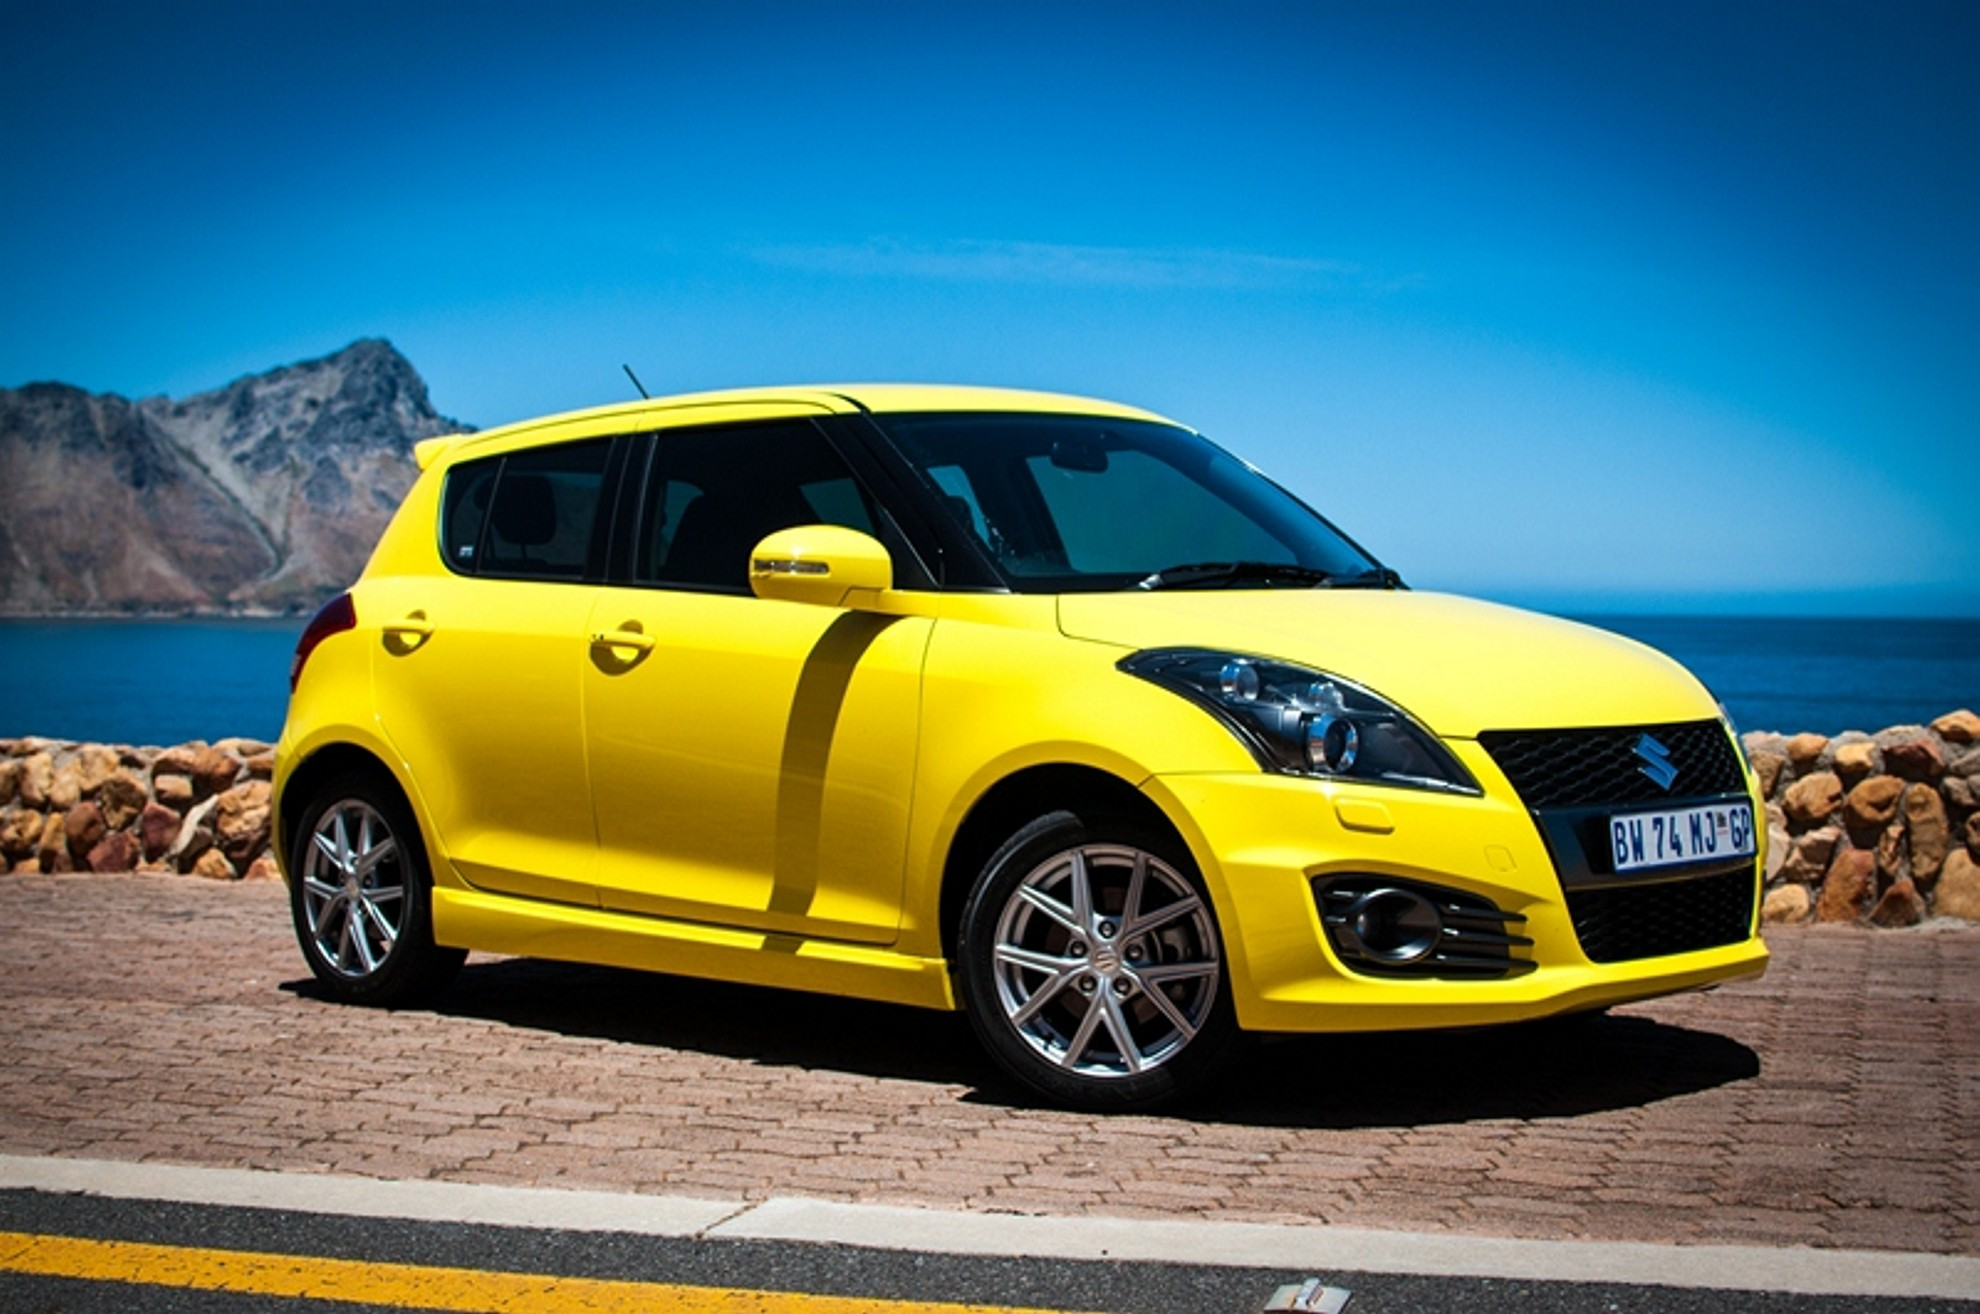 Suzuki Swift sales soar worldwide